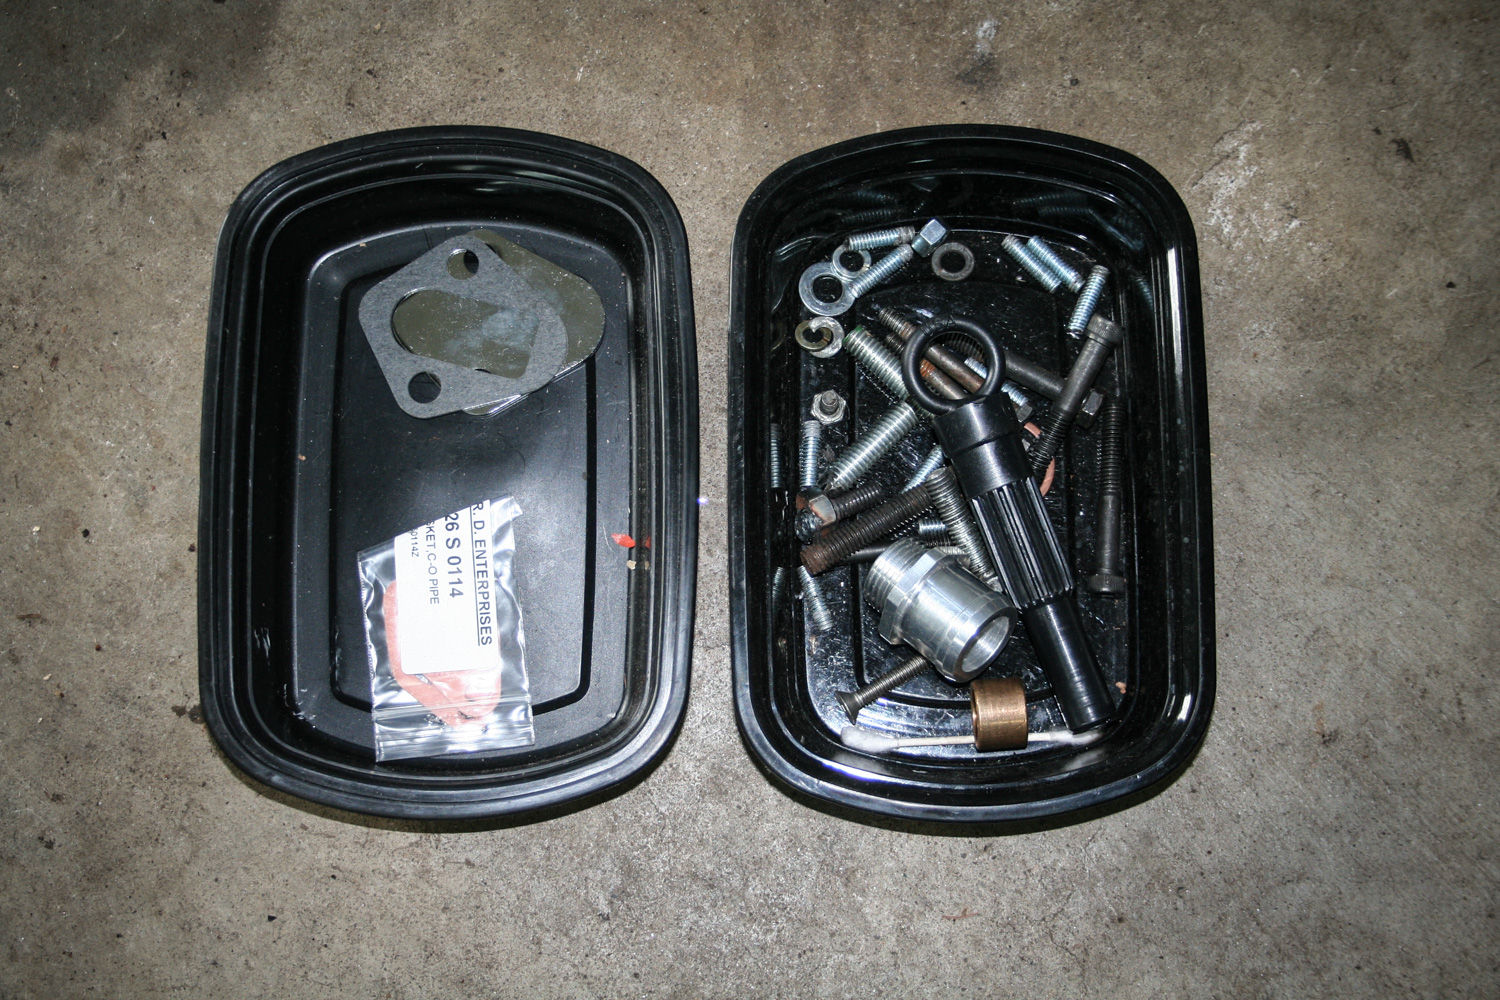 These little take-out trays see a lot of use in the garage.